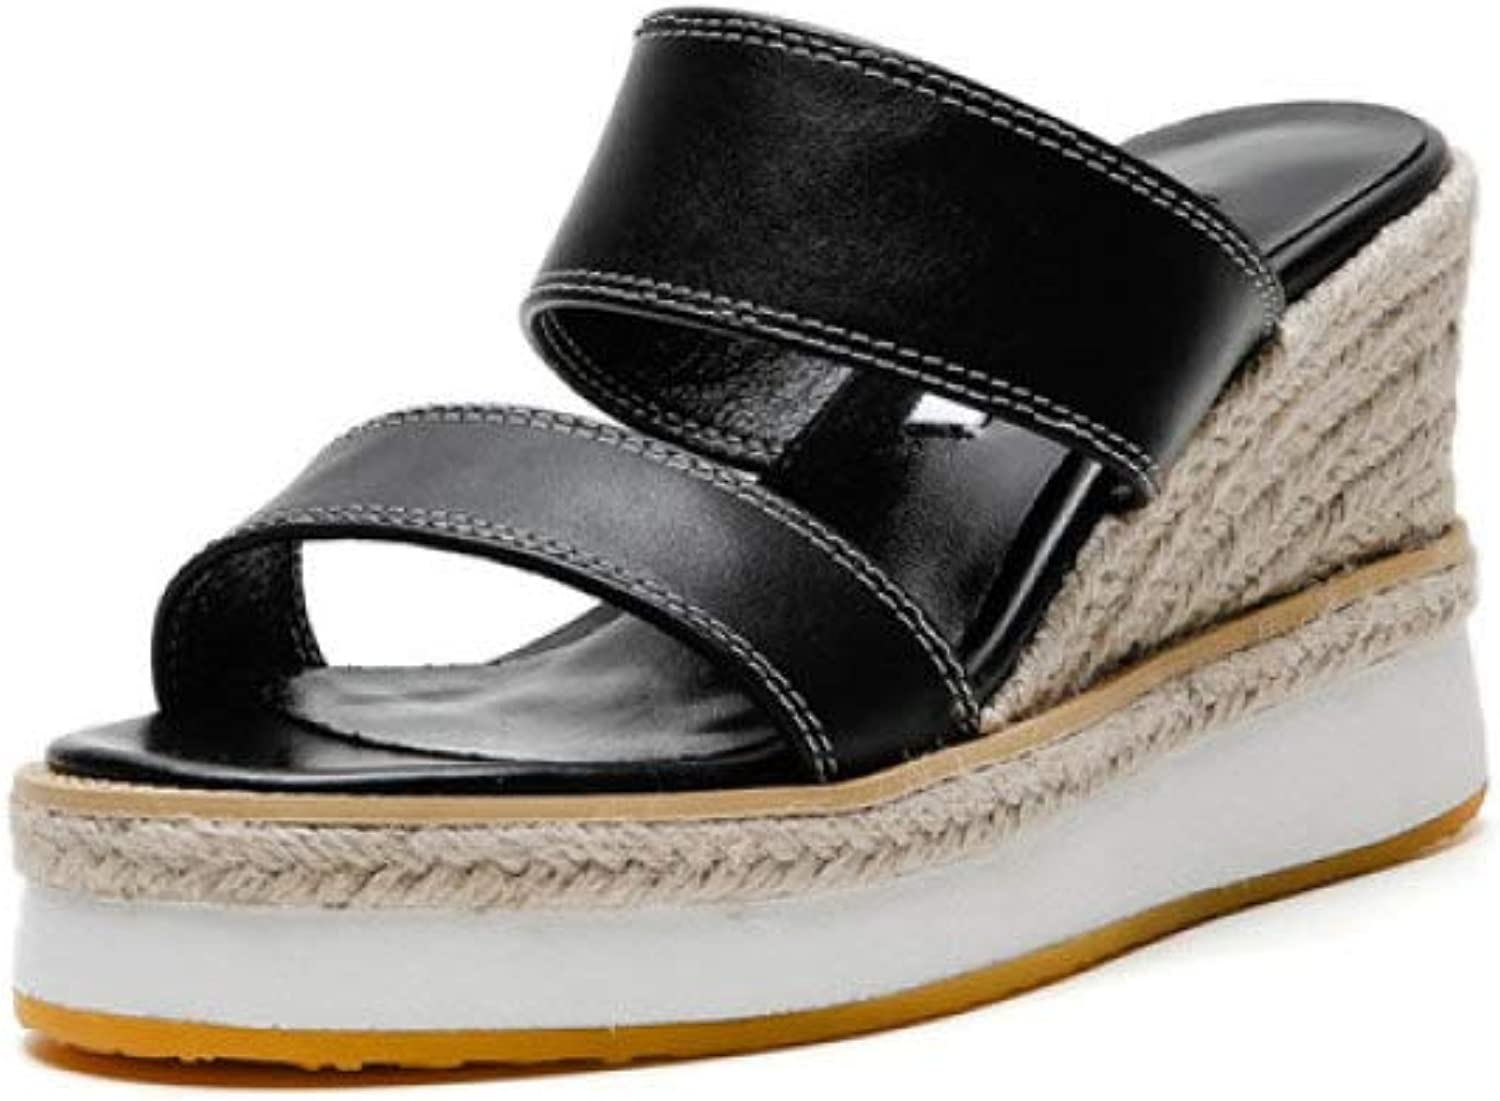 T-JULY Women Wedge Sandals Woman Genuine Leather Slopper Sweet Concise Platform Casual shoes Summer Basic Mules in Beige Black Yellow